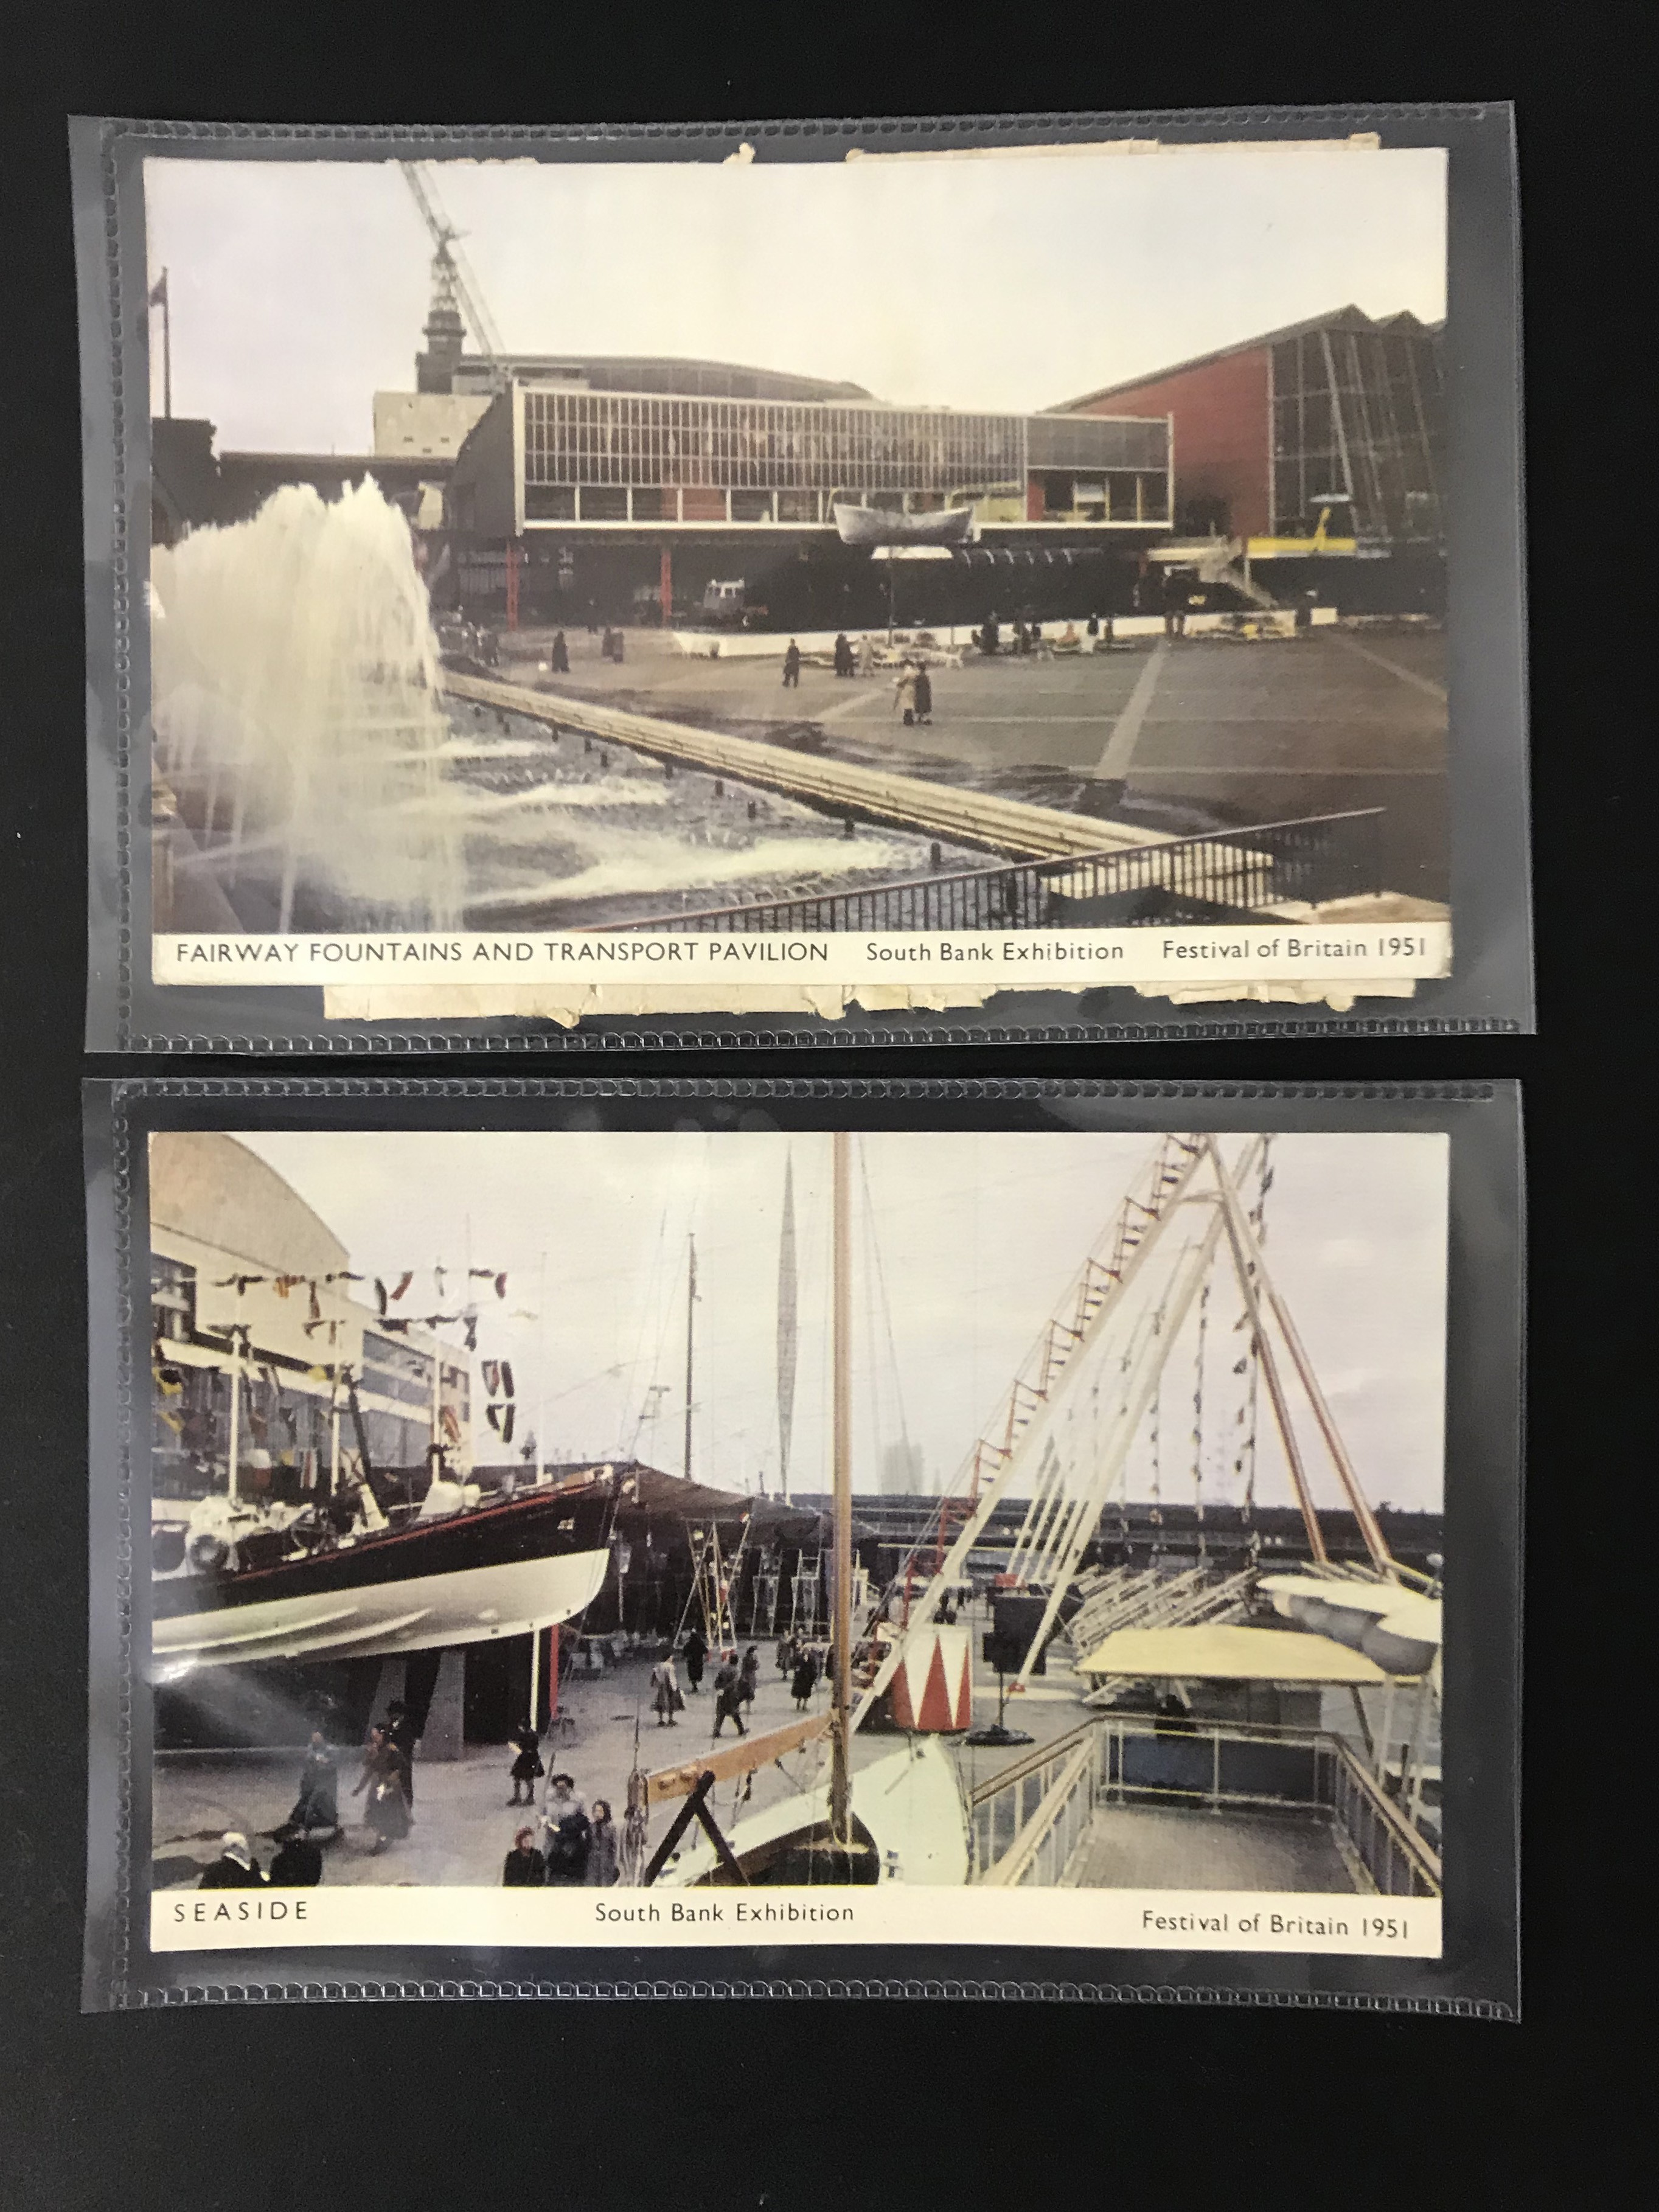 COMPLETE SET OF SIX FESTIVAL OF BRITAIN POSTCARDS - 6 JARROLD POSTCARDS - SOUTH BANK EXHIBITION - Image 2 of 6